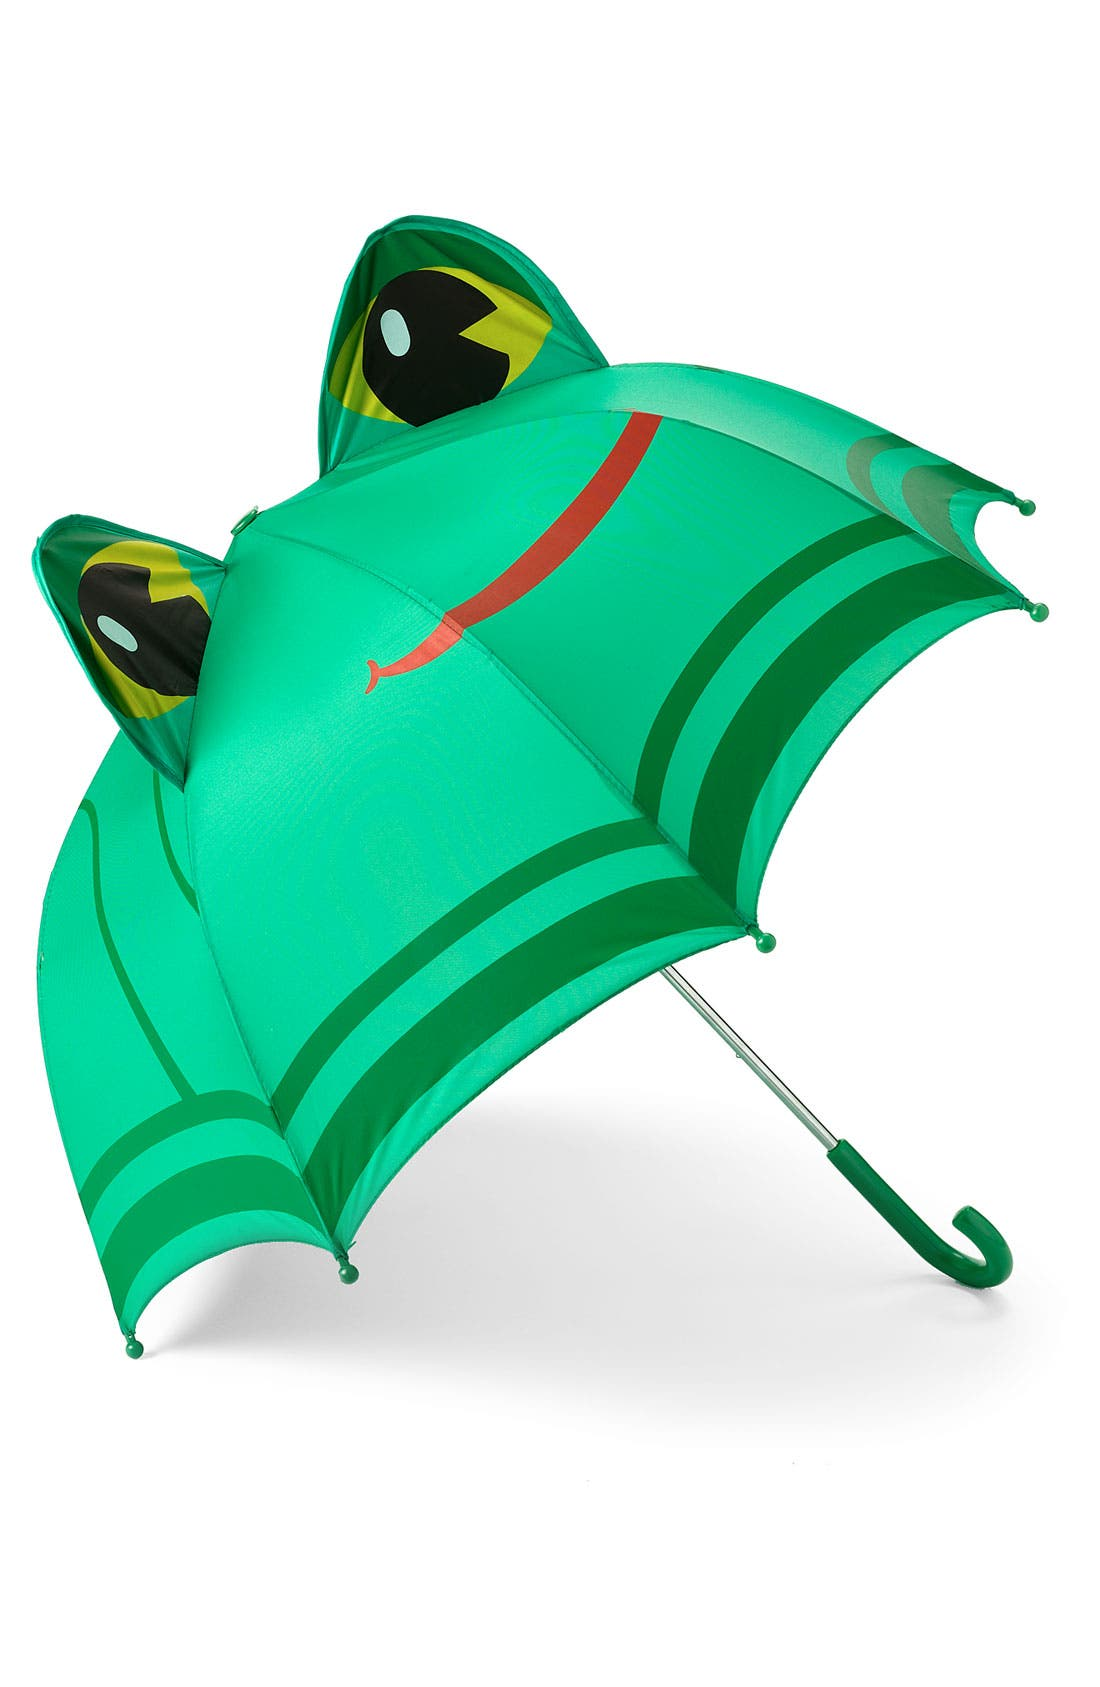 Alternate Image 1 Selected - Western Chief 'Frog' Umbrella